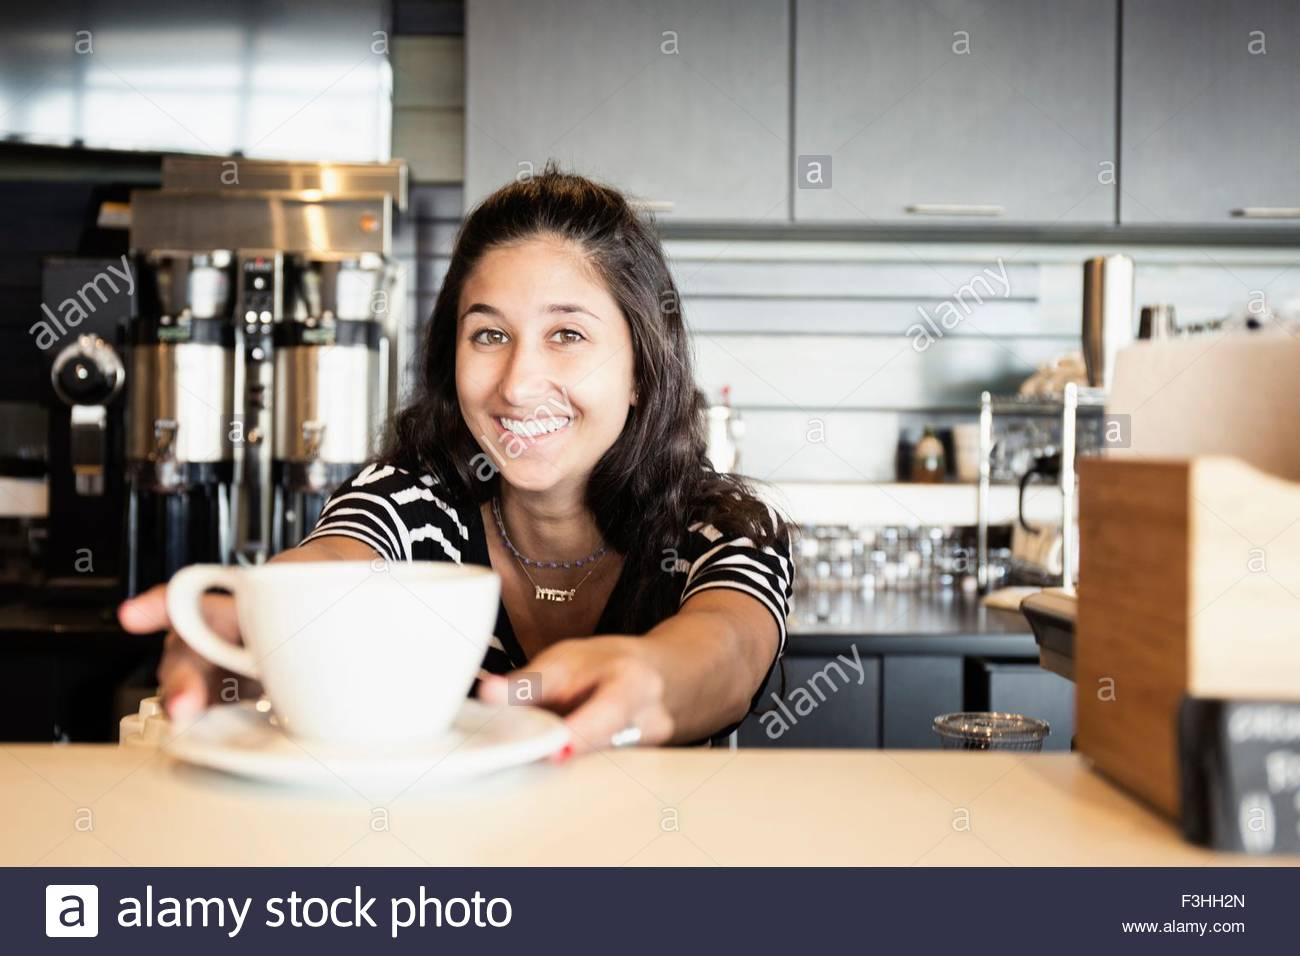 Coffee shop barista serving coffee - Stock Image